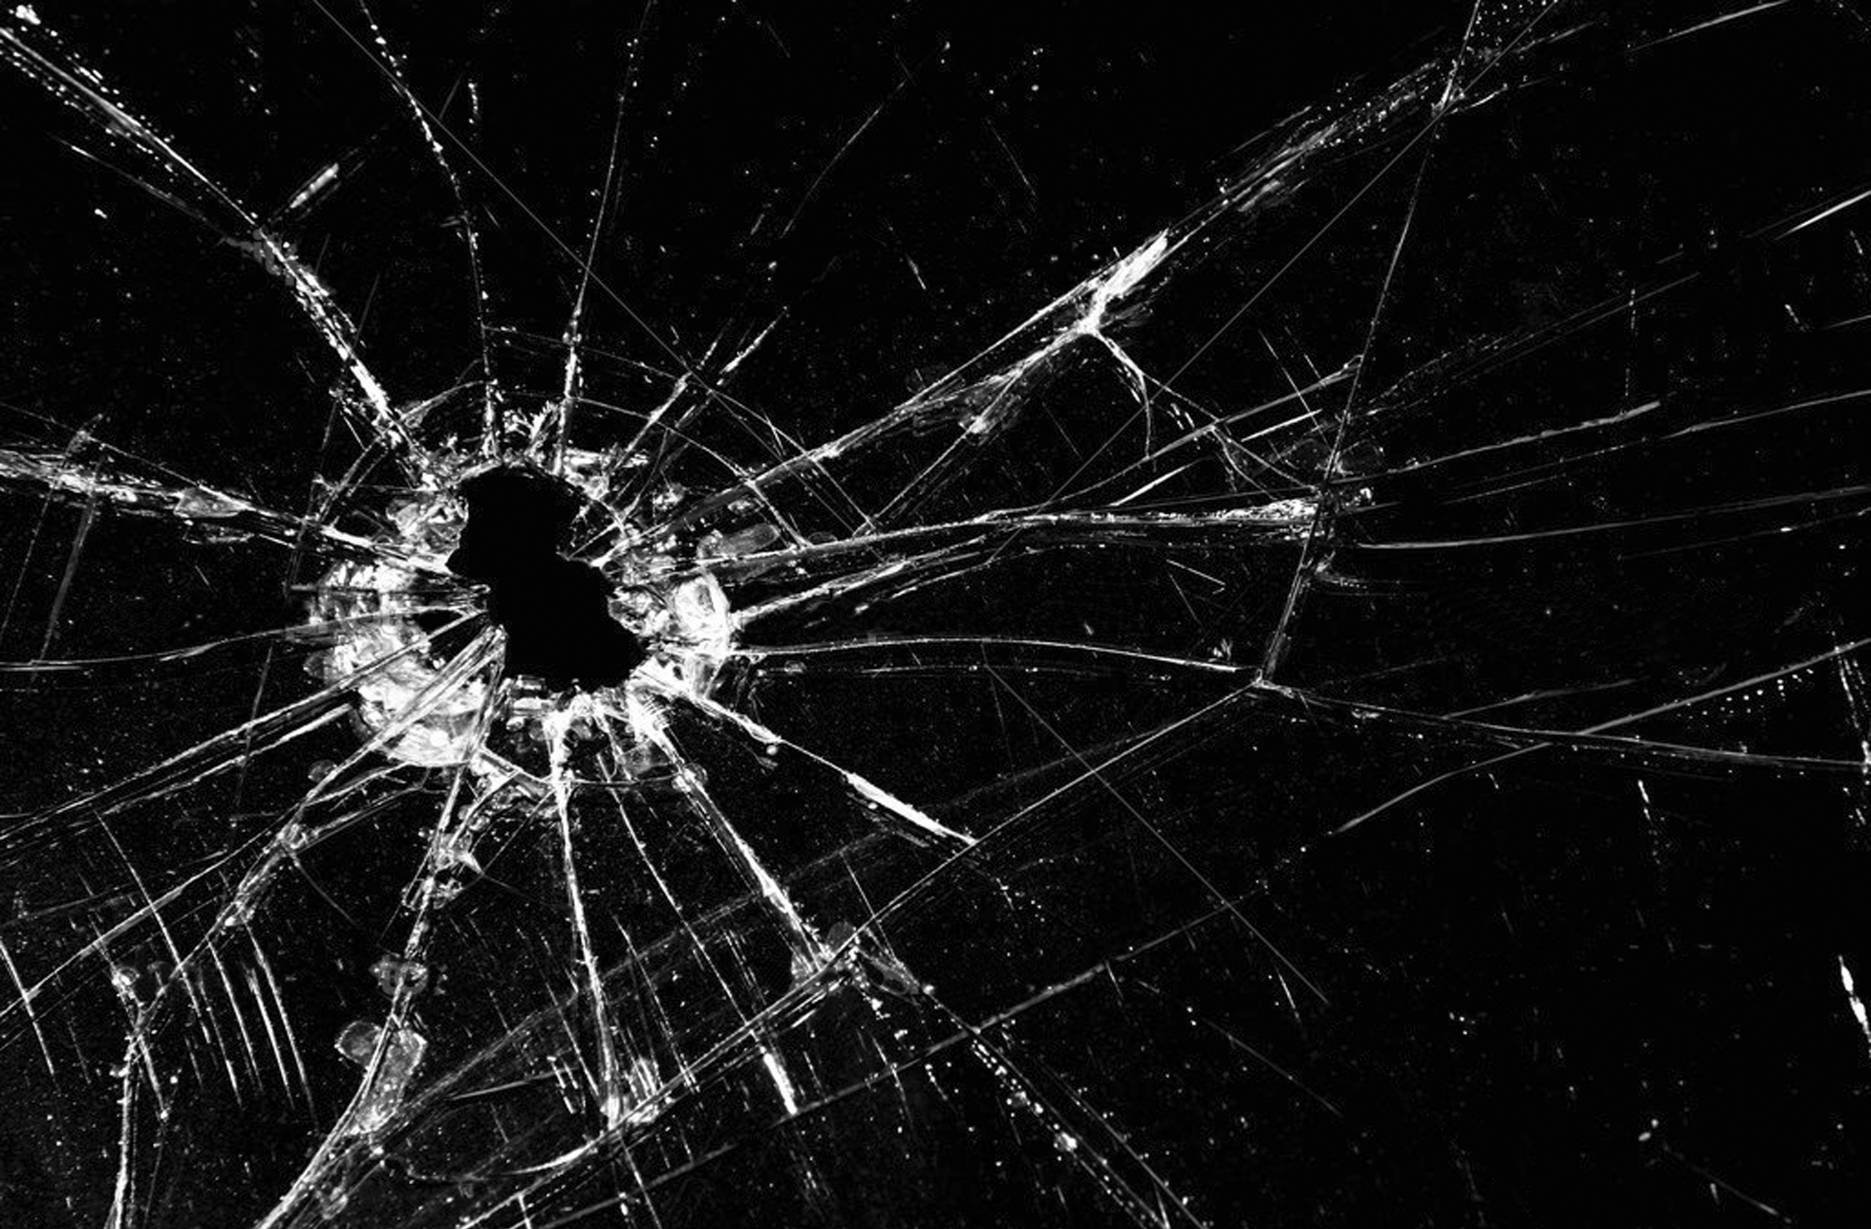 crack abstract window bokeh pattern psychedelic wallpaper background 1871x1229